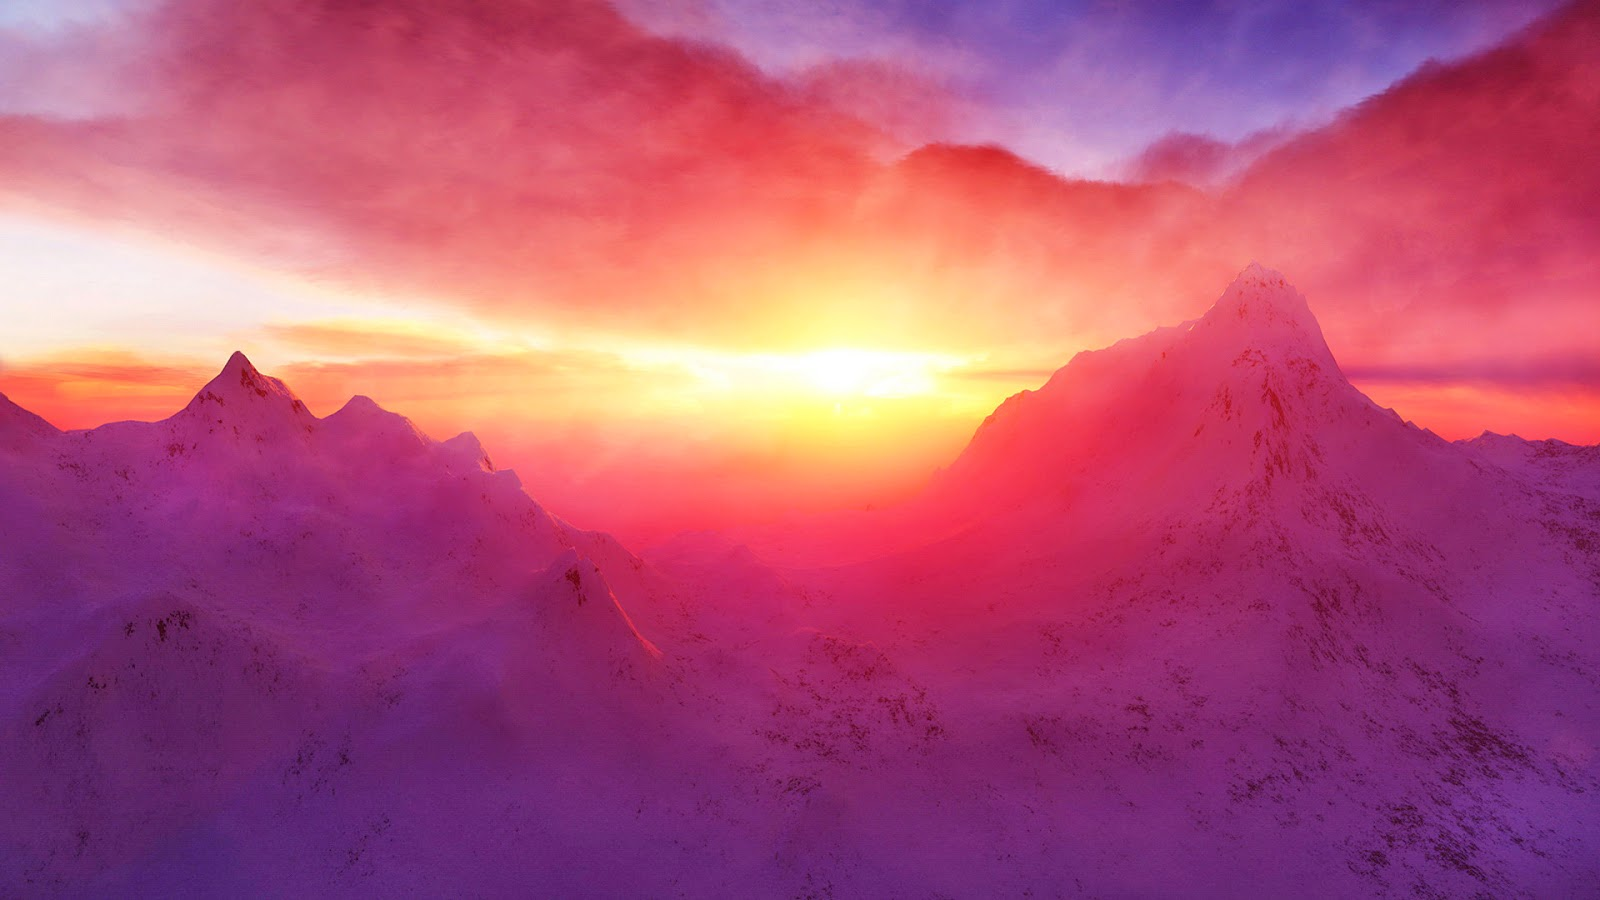 sunset-snowy-mountains-wallpaper-beautiful-nature-images-wallpapers